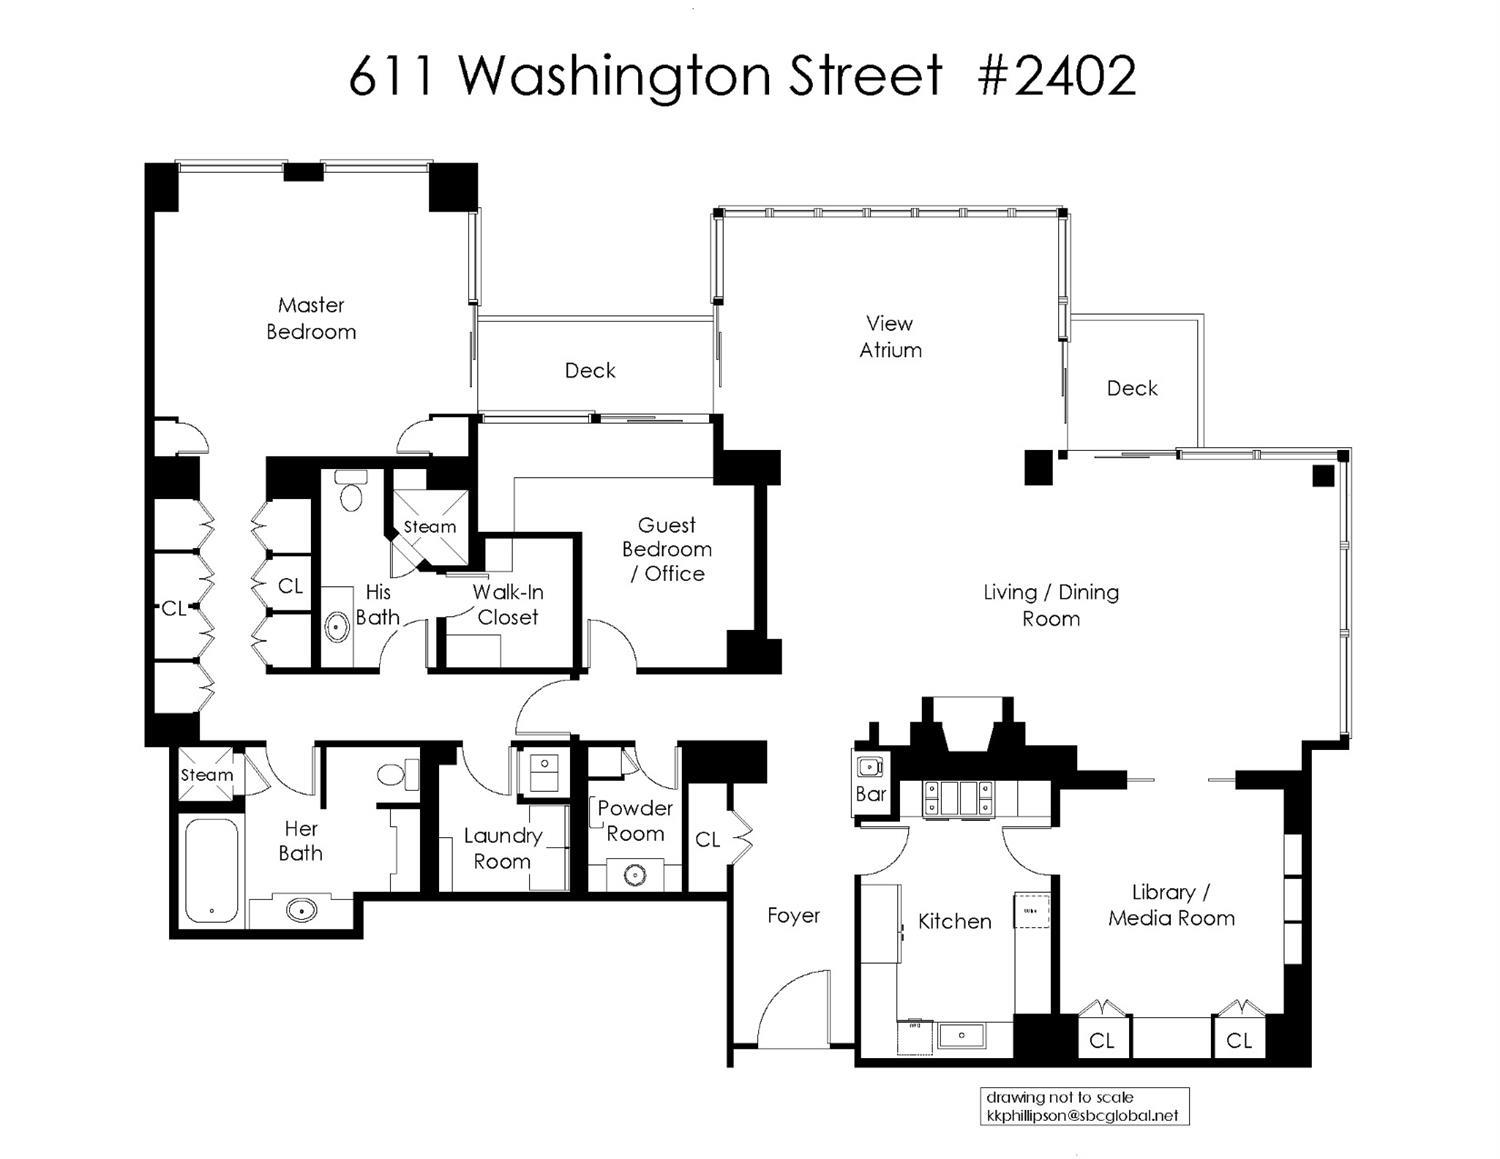 611 Washington # 2402